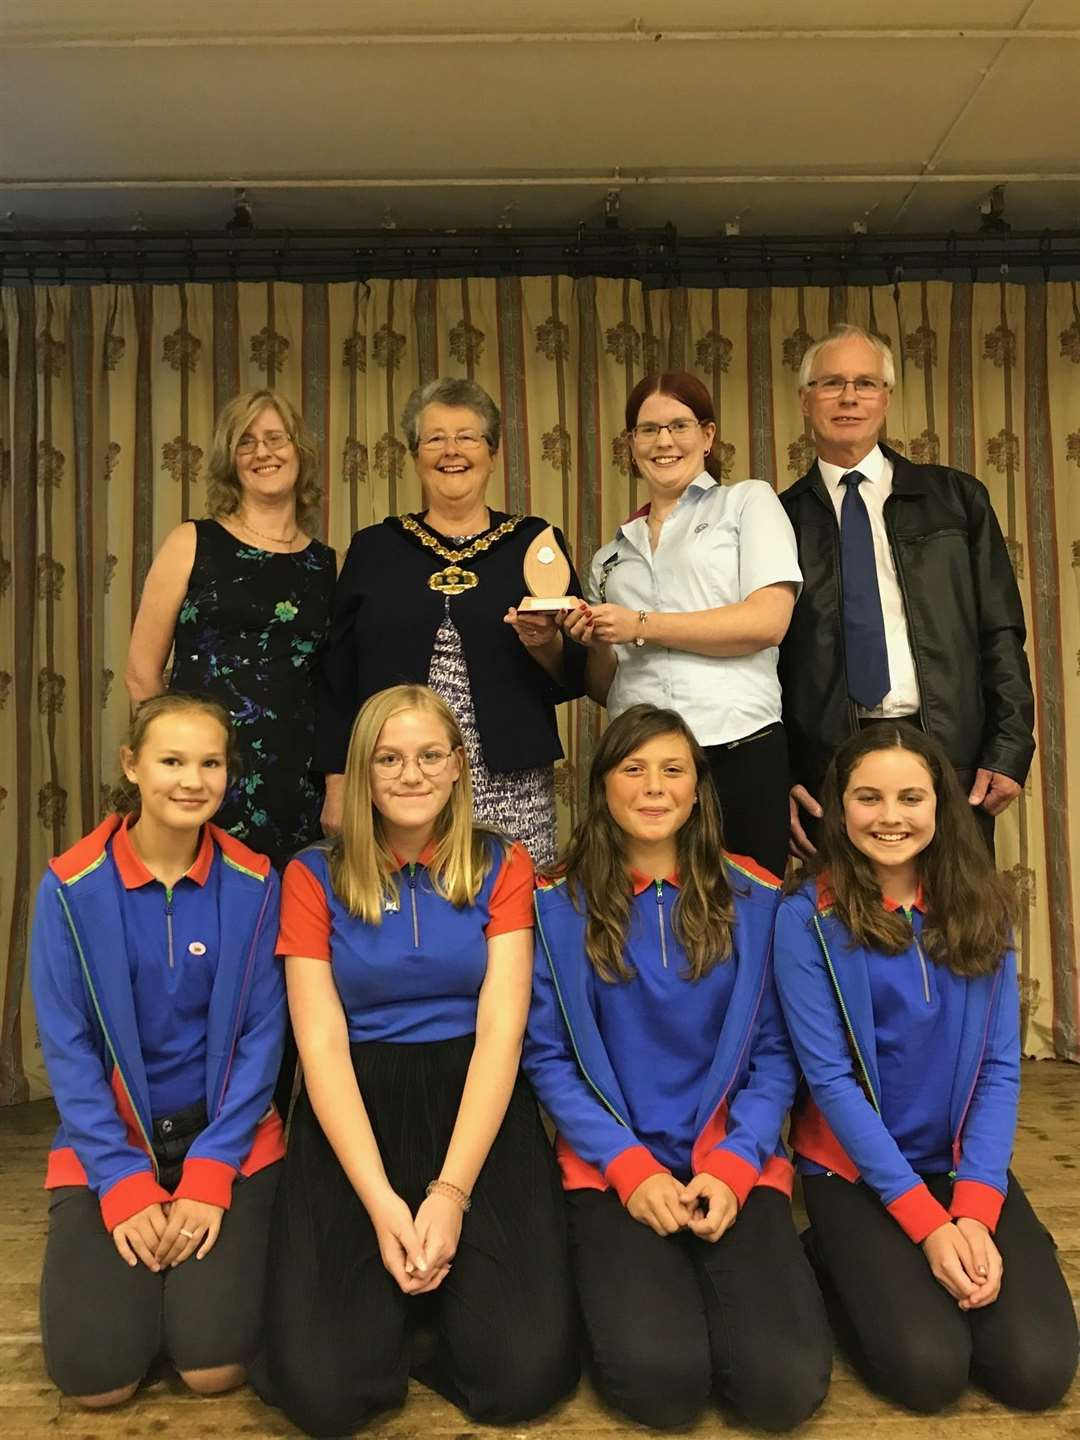 LtoR Jacqueline Turner, mum, Cheryl Turner, Community Hero award winner, Stephen Turner, dad. Front L to R: Girl Guides: Charlotte Rushton, Katie Bradley, Holly Webb, Olivia Brown (4200175)